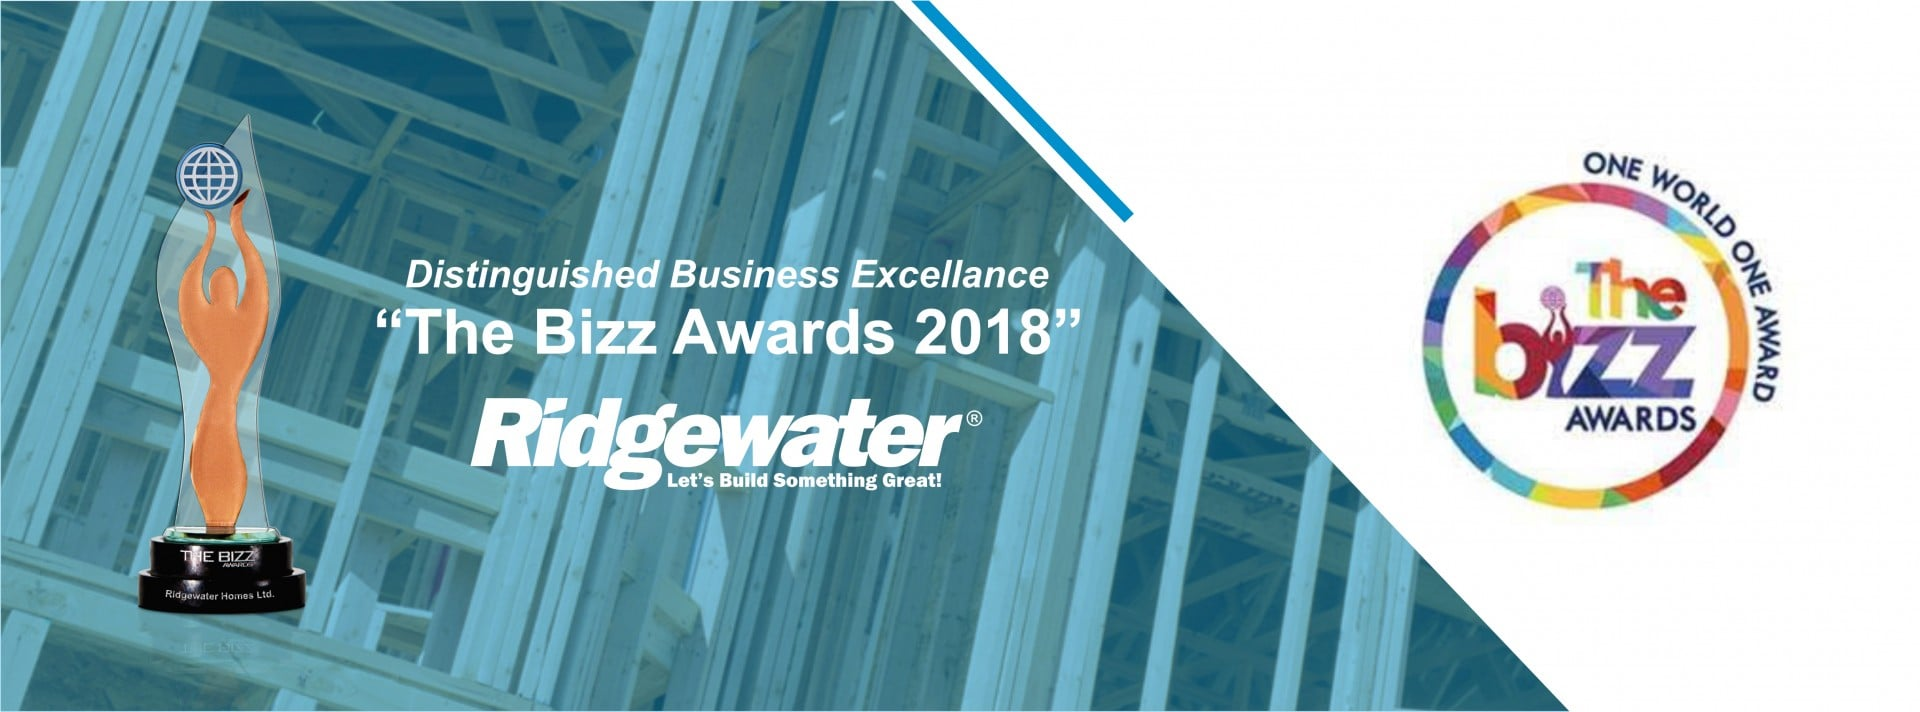 Ridgewater Homes is awarded with THE BIZZfor its distinguished business excellence